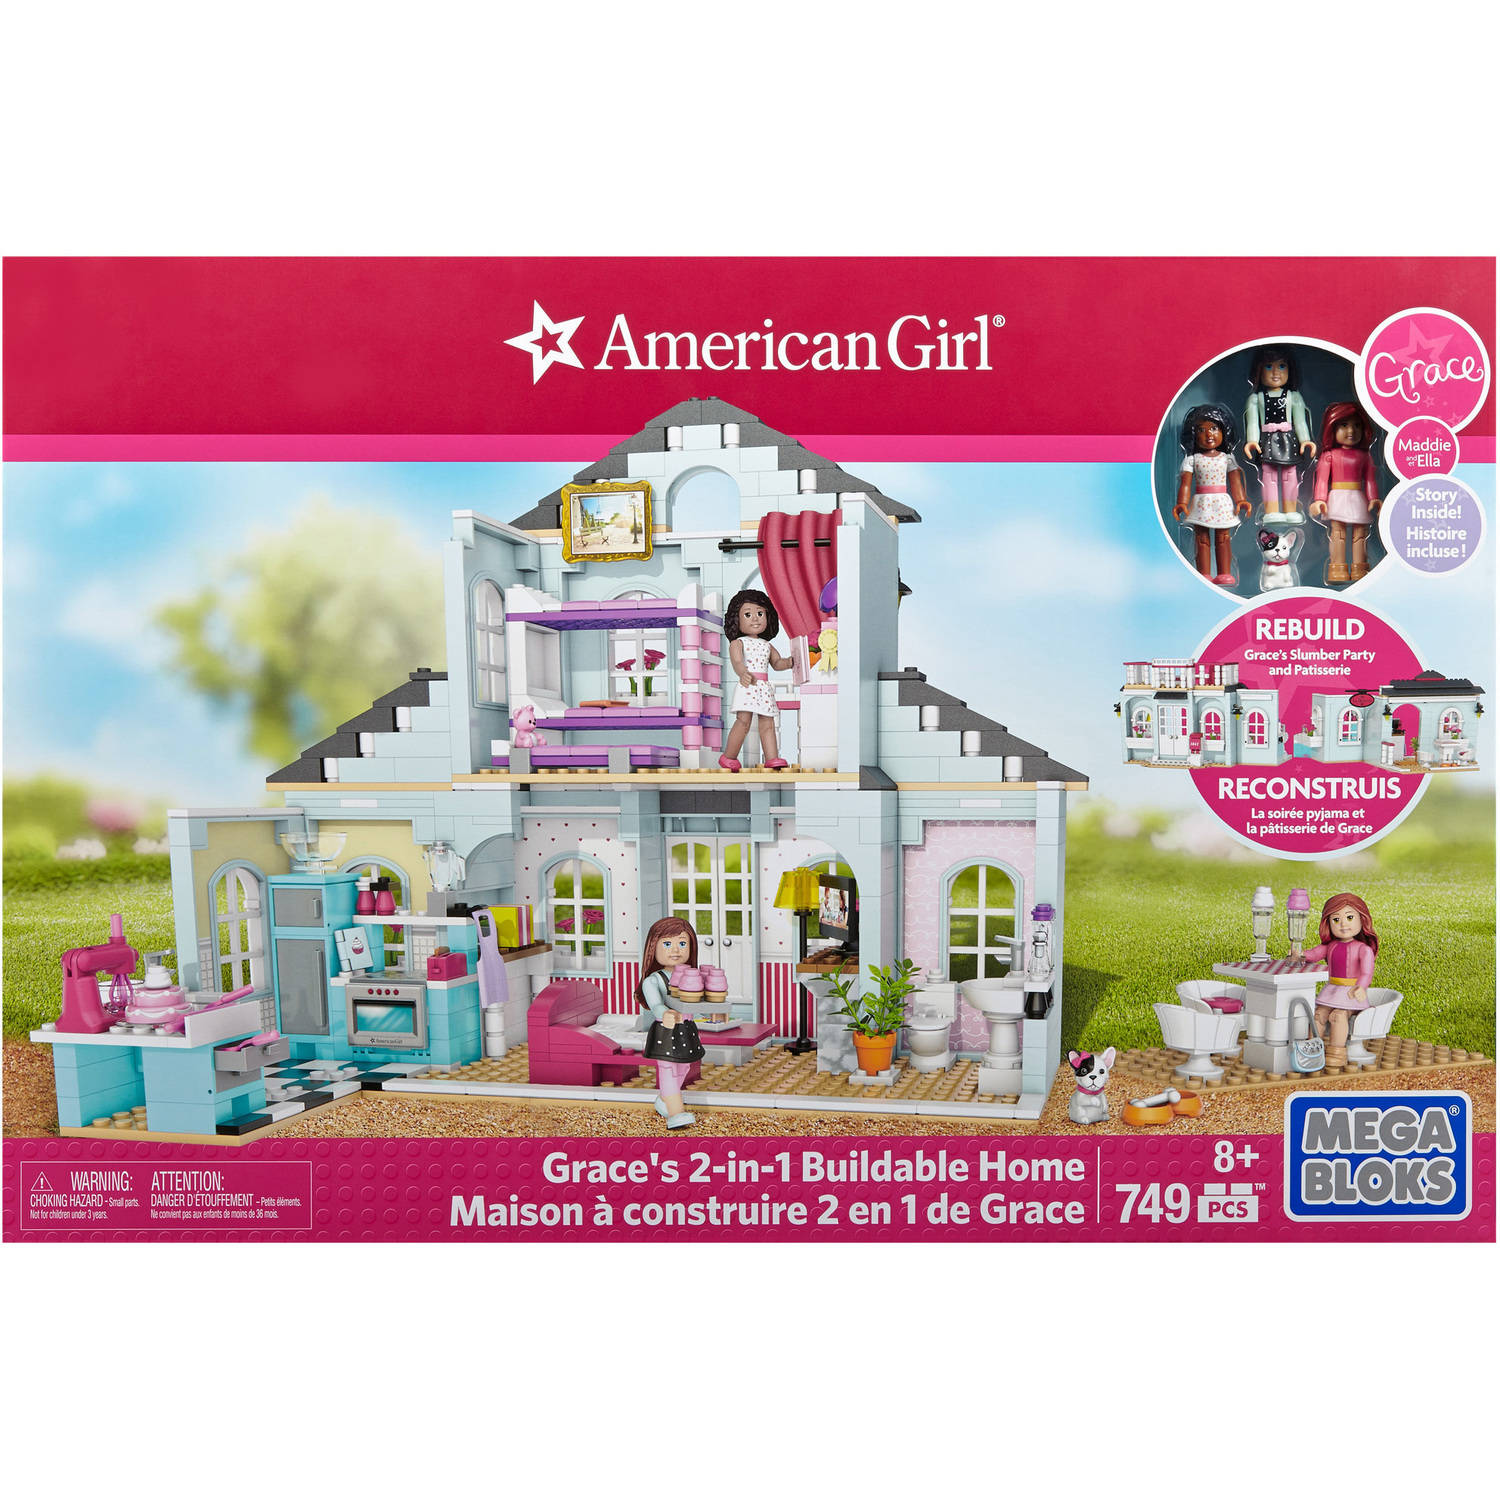 Mega Bloks American Girl Grace's 2-in-1 Buildable Home Playset